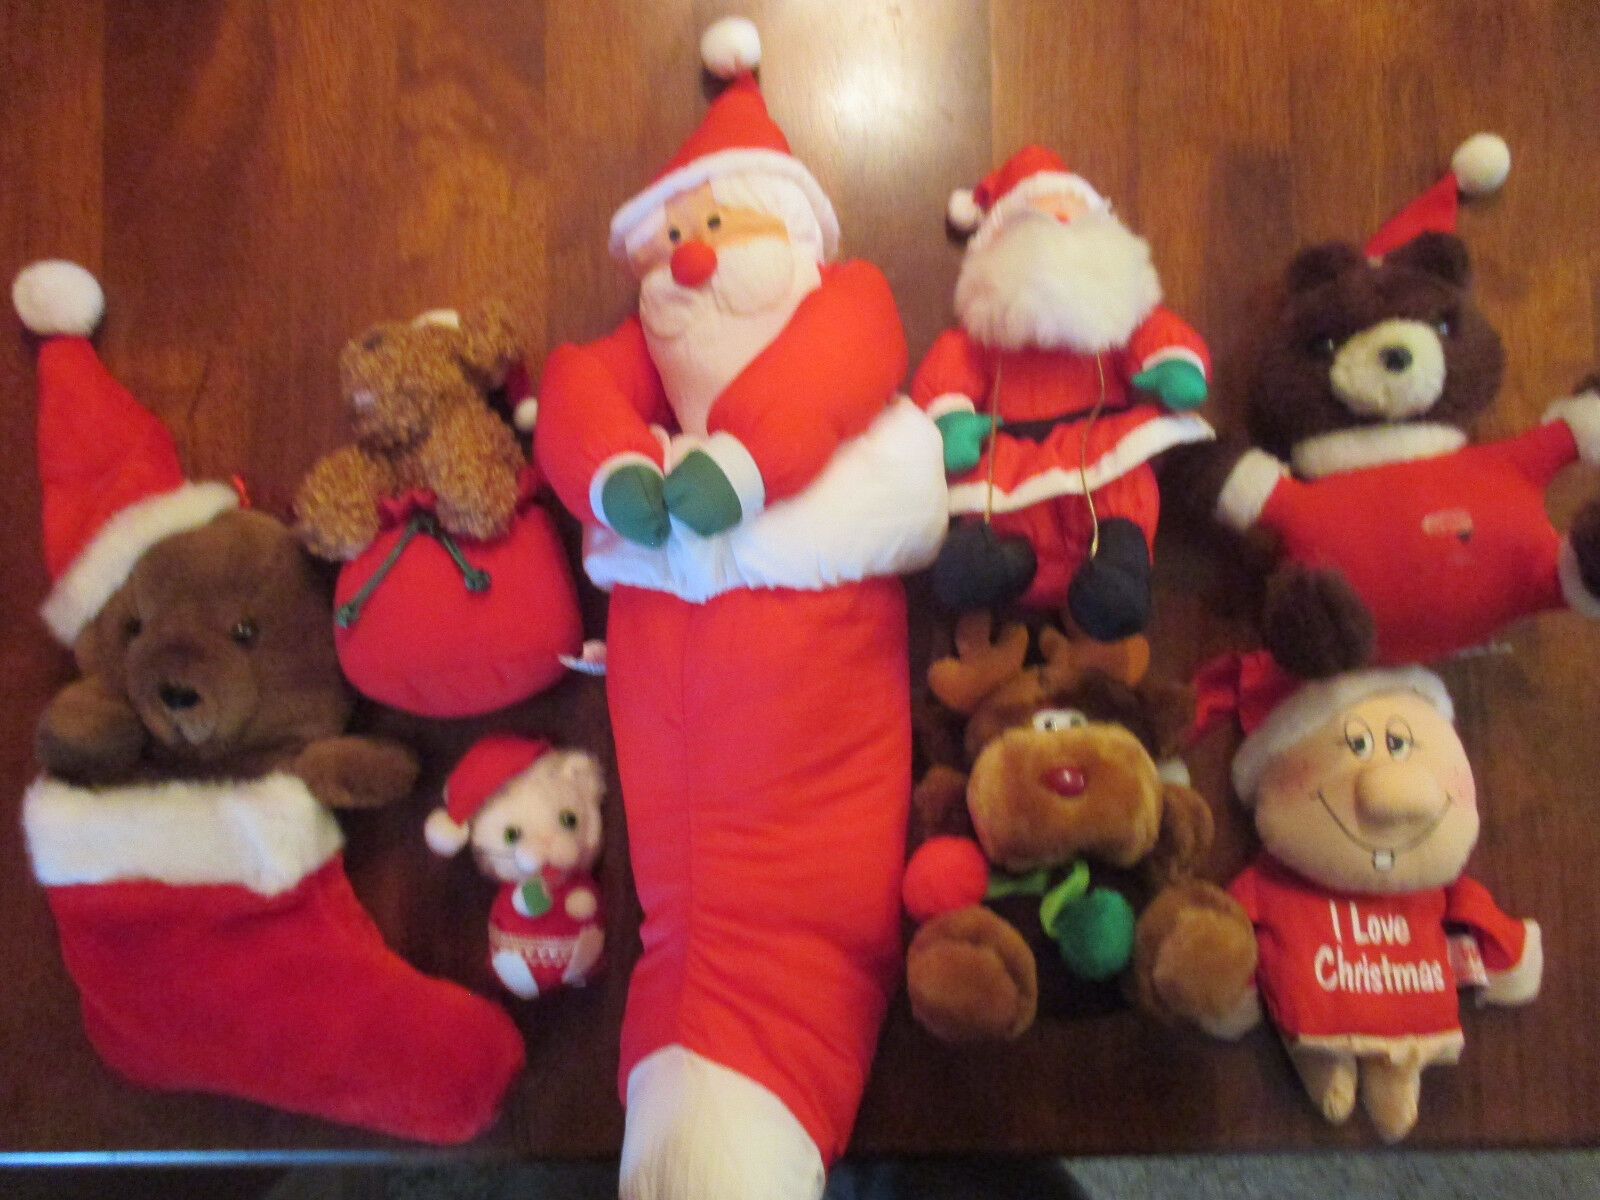 Soft and Cuddly Christmas Decorations. Stuffed Toys.